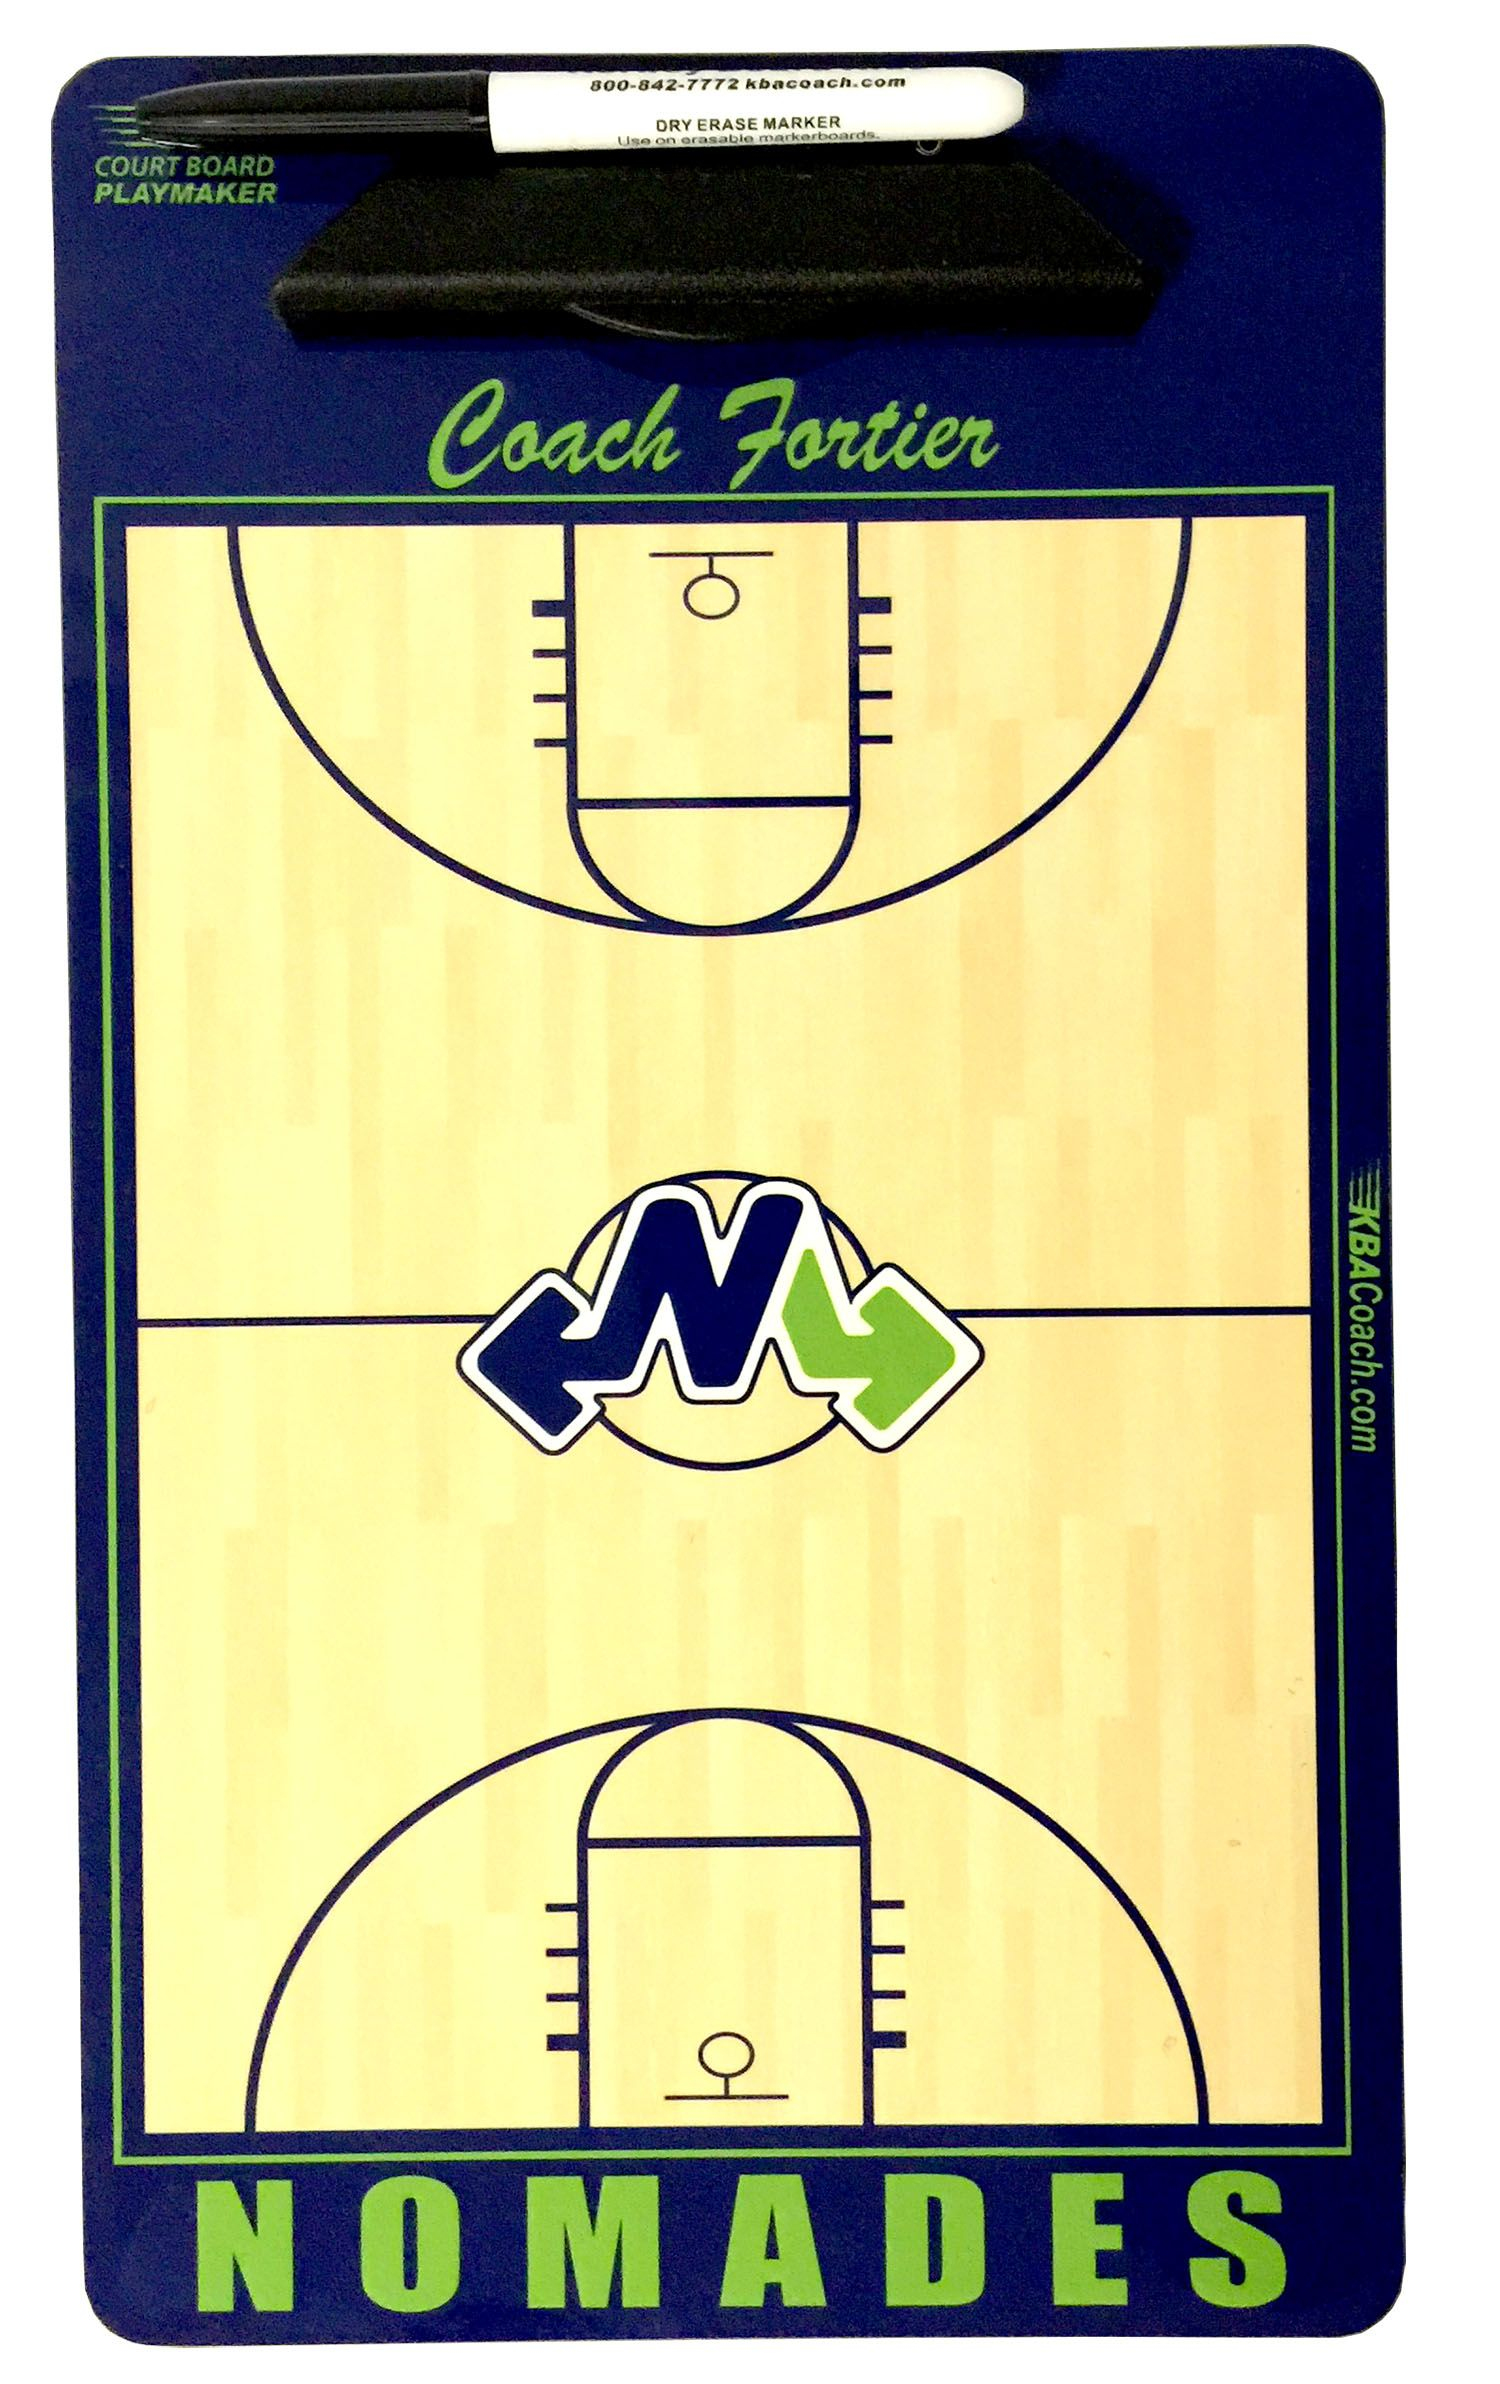 5ec0034e6ea Custom basketball clipboard with a dry erase finish. Customize with team  colors, team name and personalize too. Great for a coaches gift.